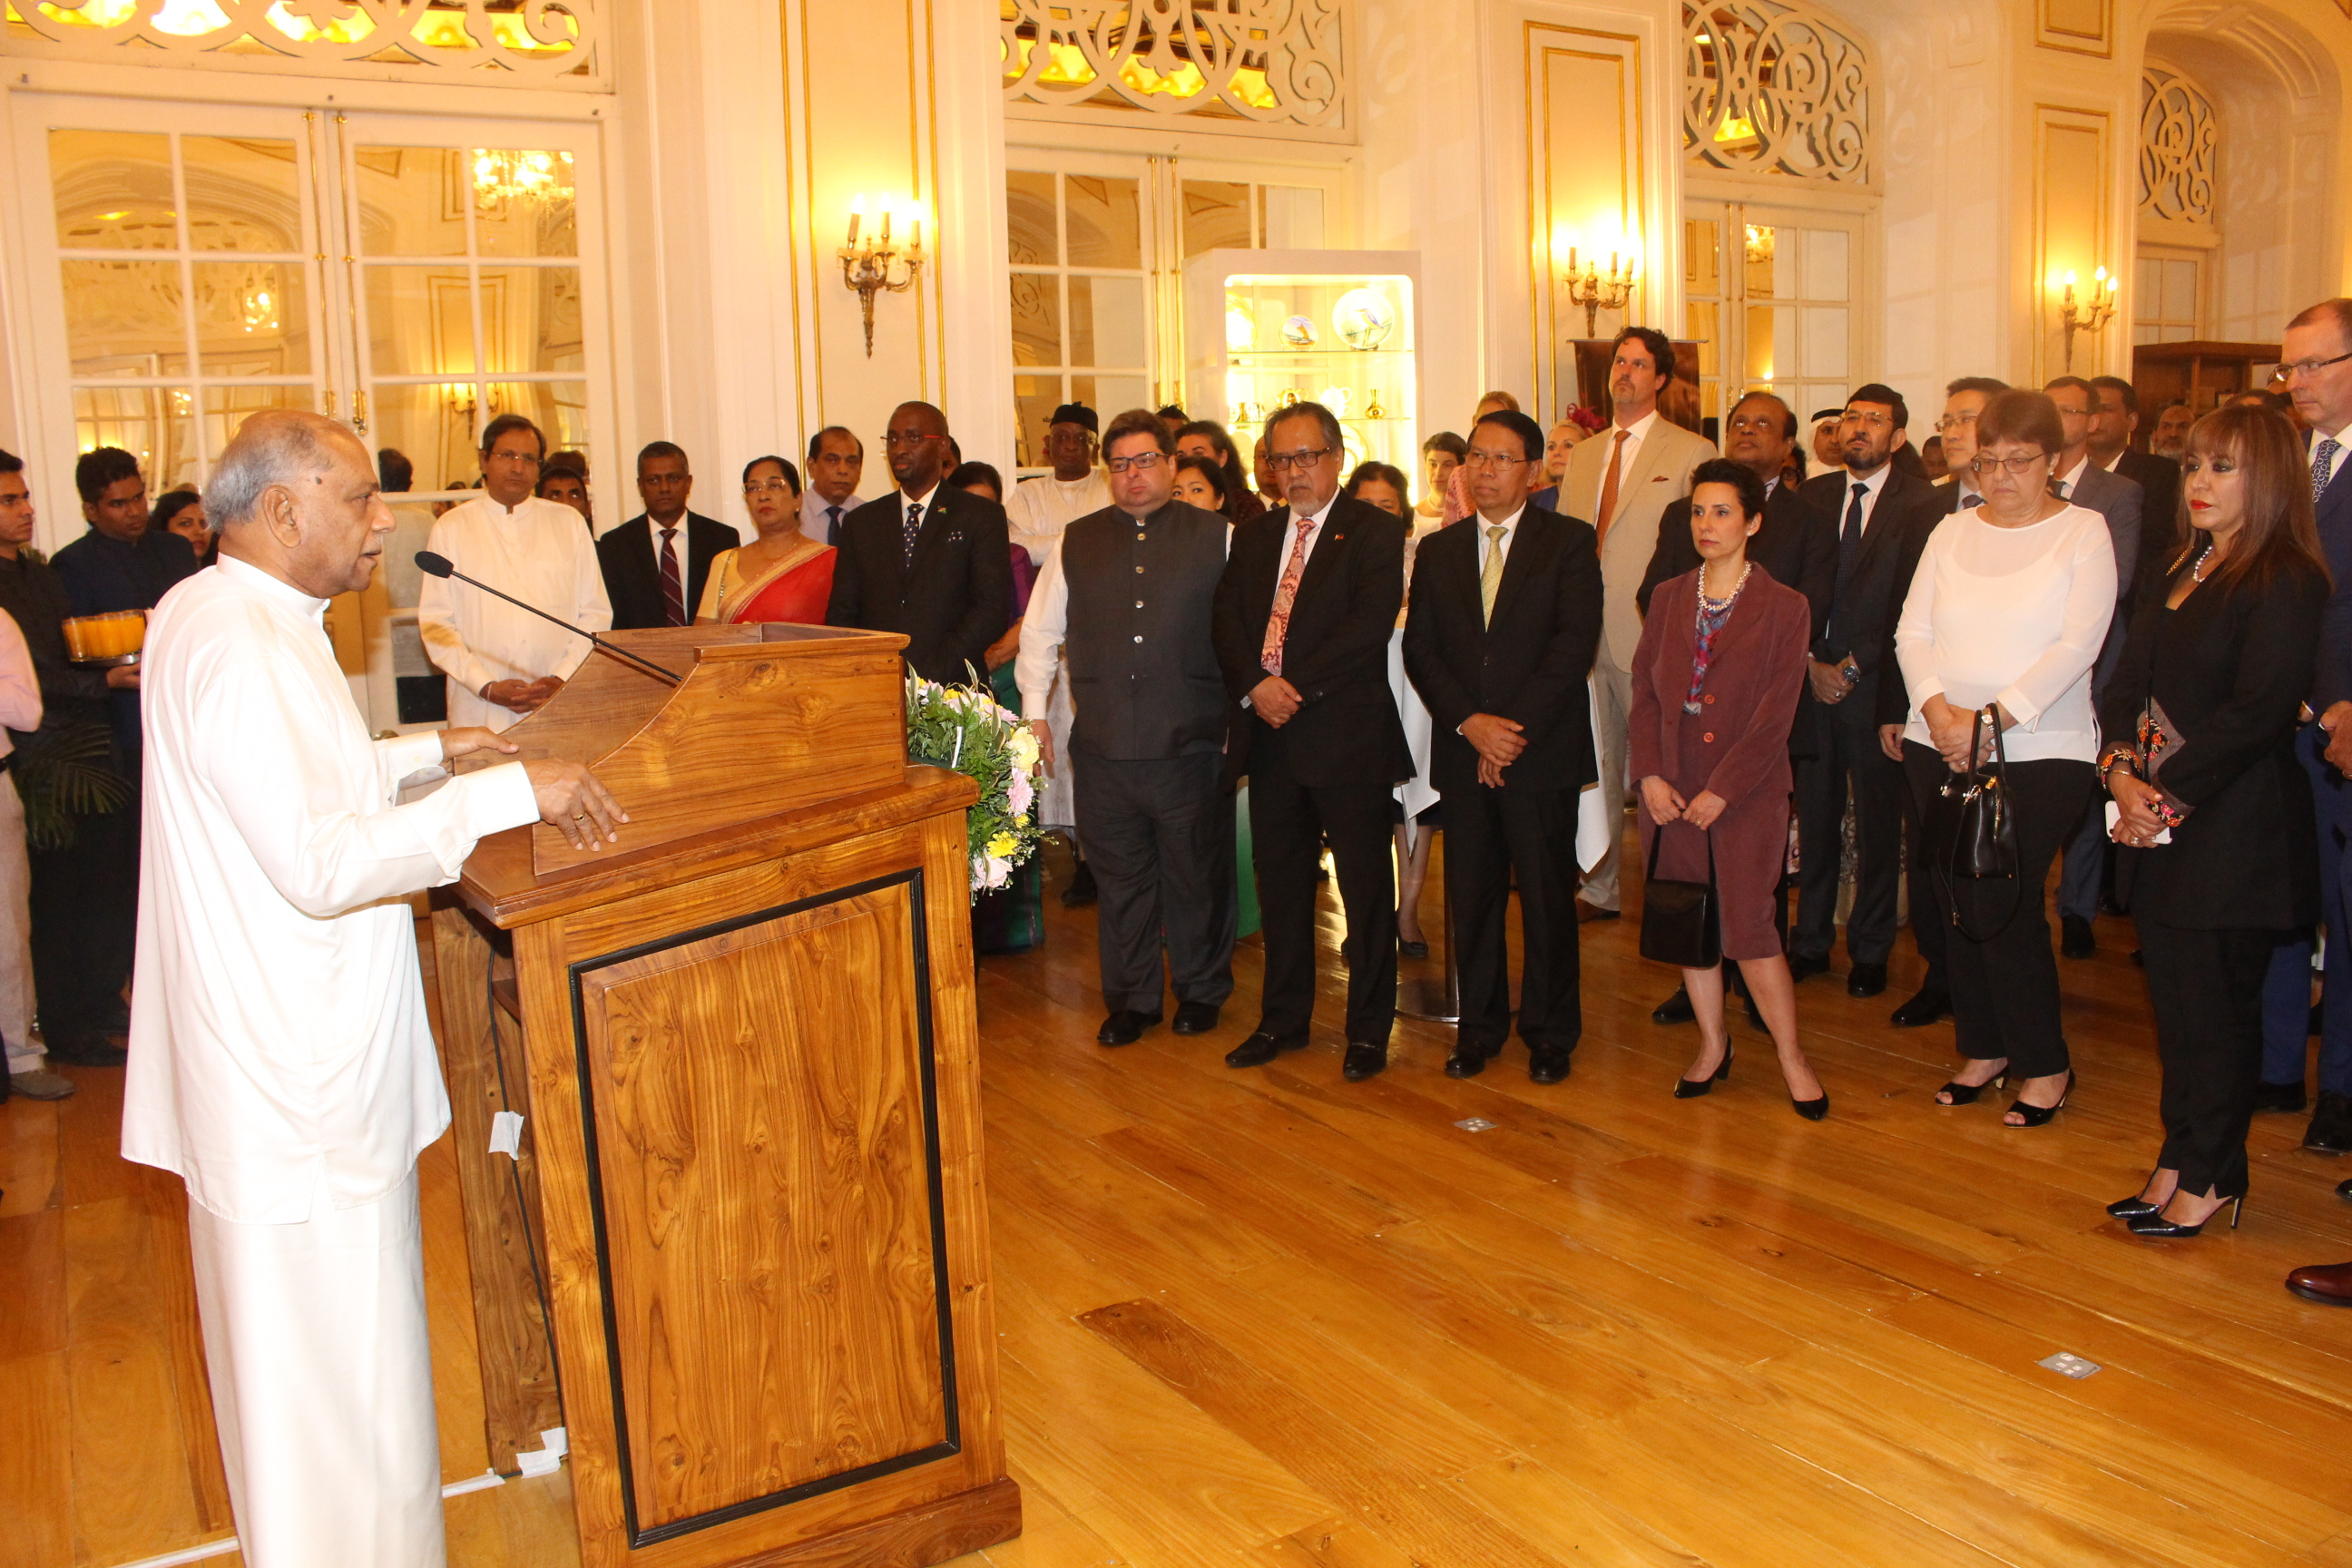 FOREIGN MINISTER HOSTS AMBASSADORS AT THE INDEPENDENCE DAY RECEPTION